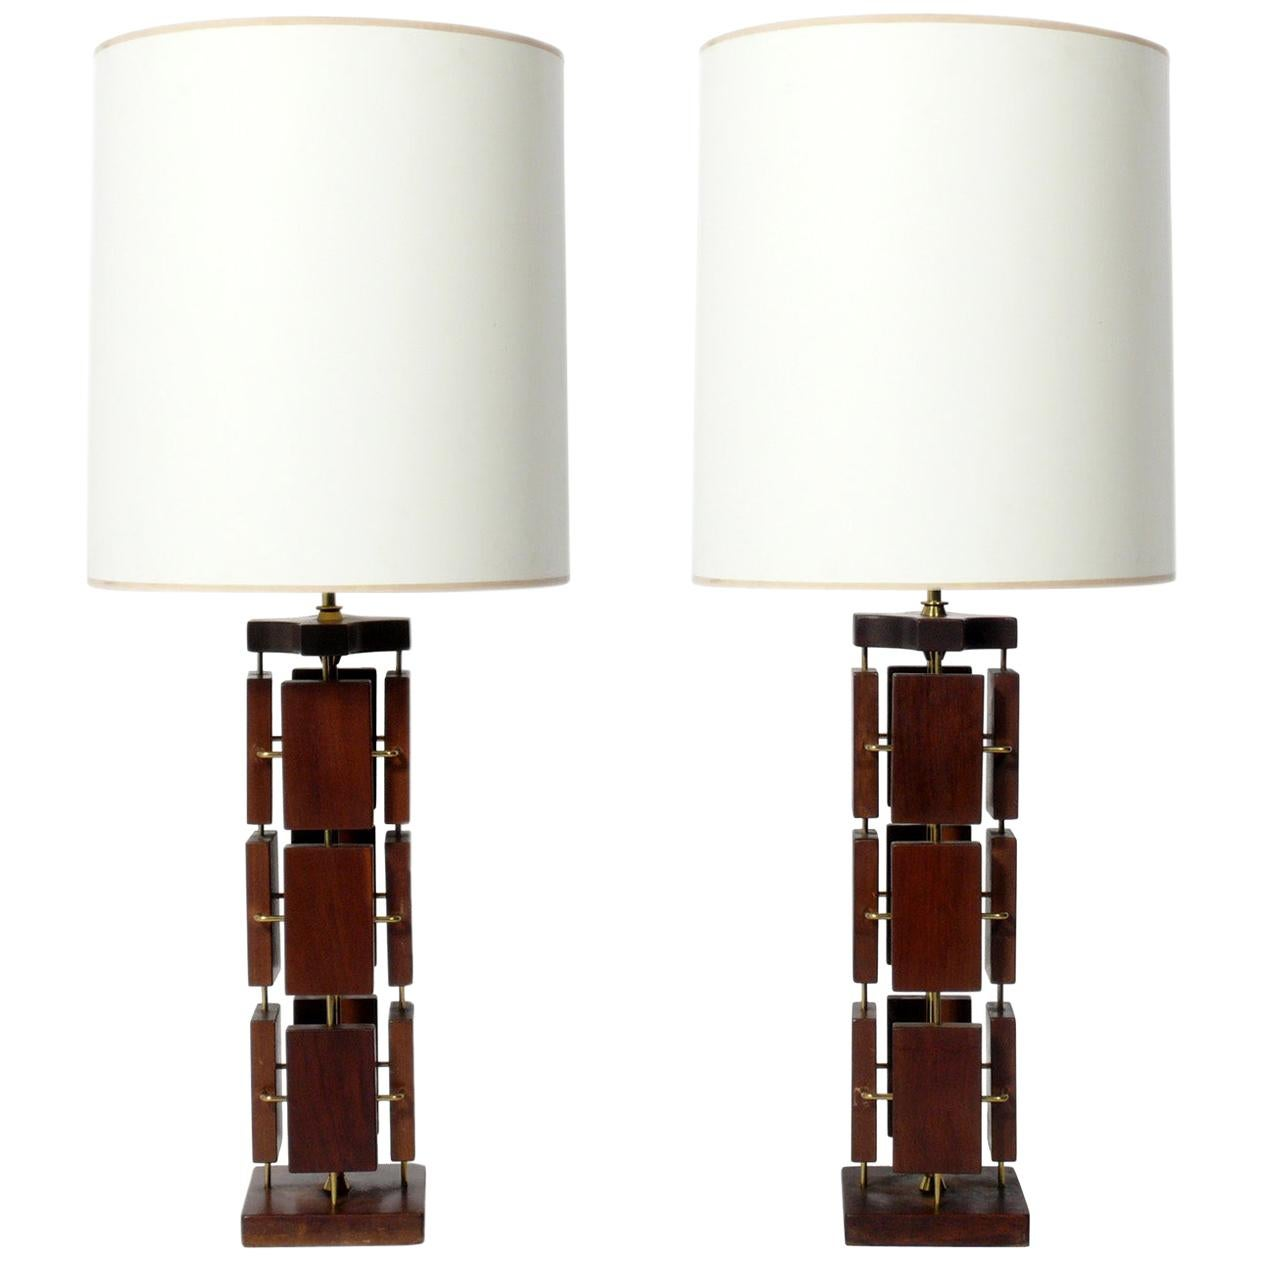 Pair of Sculptural Walnut and Brass Mid-Century Modern Lamps